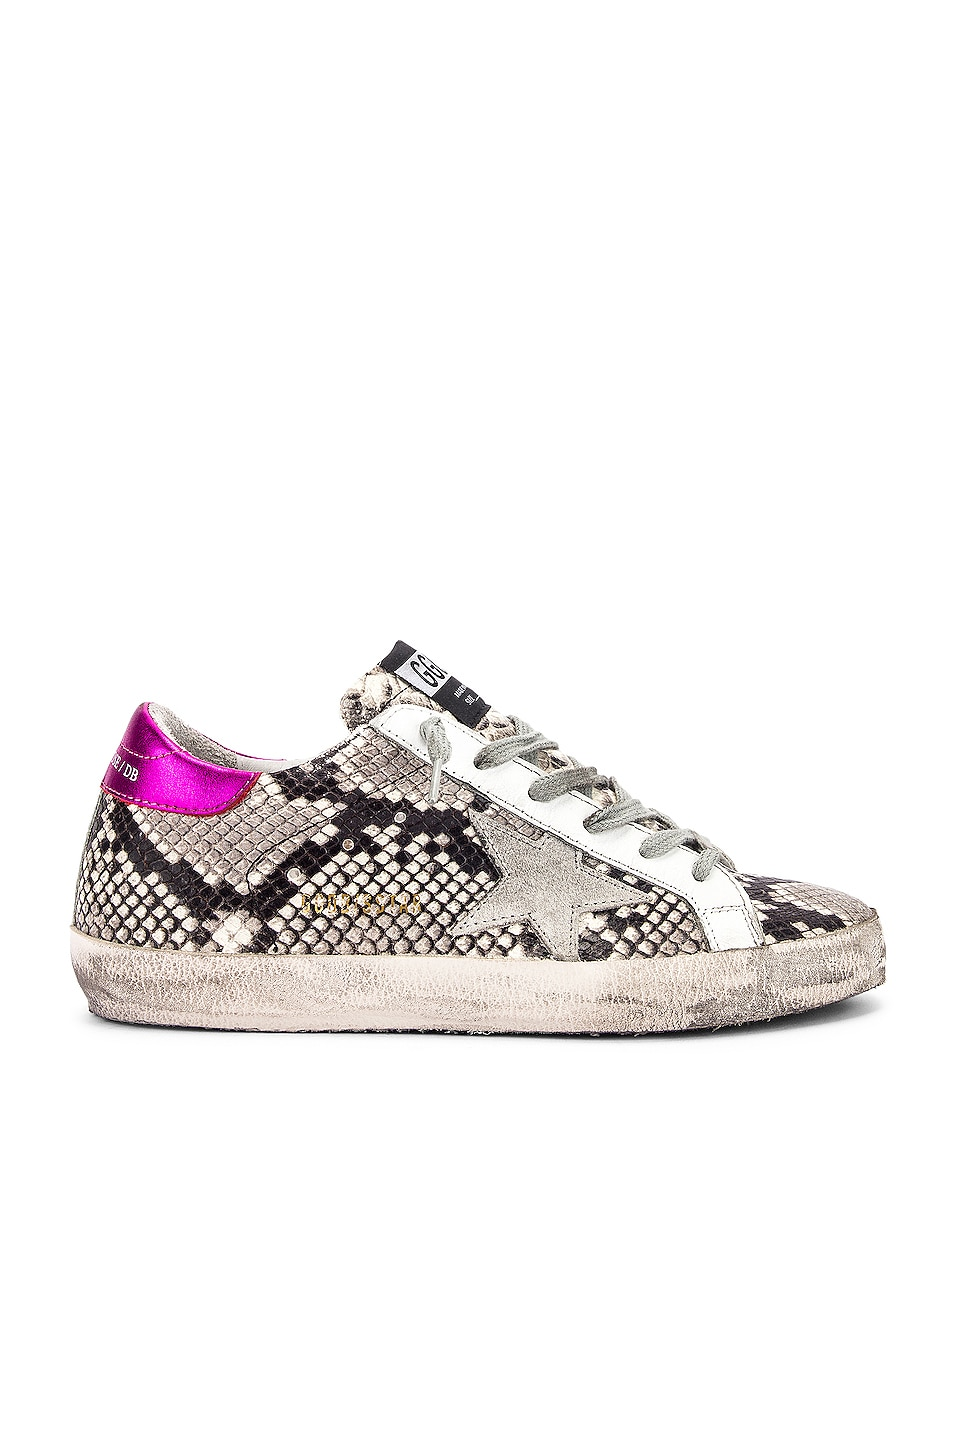 Image 1 of Golden Goose Superstar Sneaker in Natural Snake Print & Ice Star